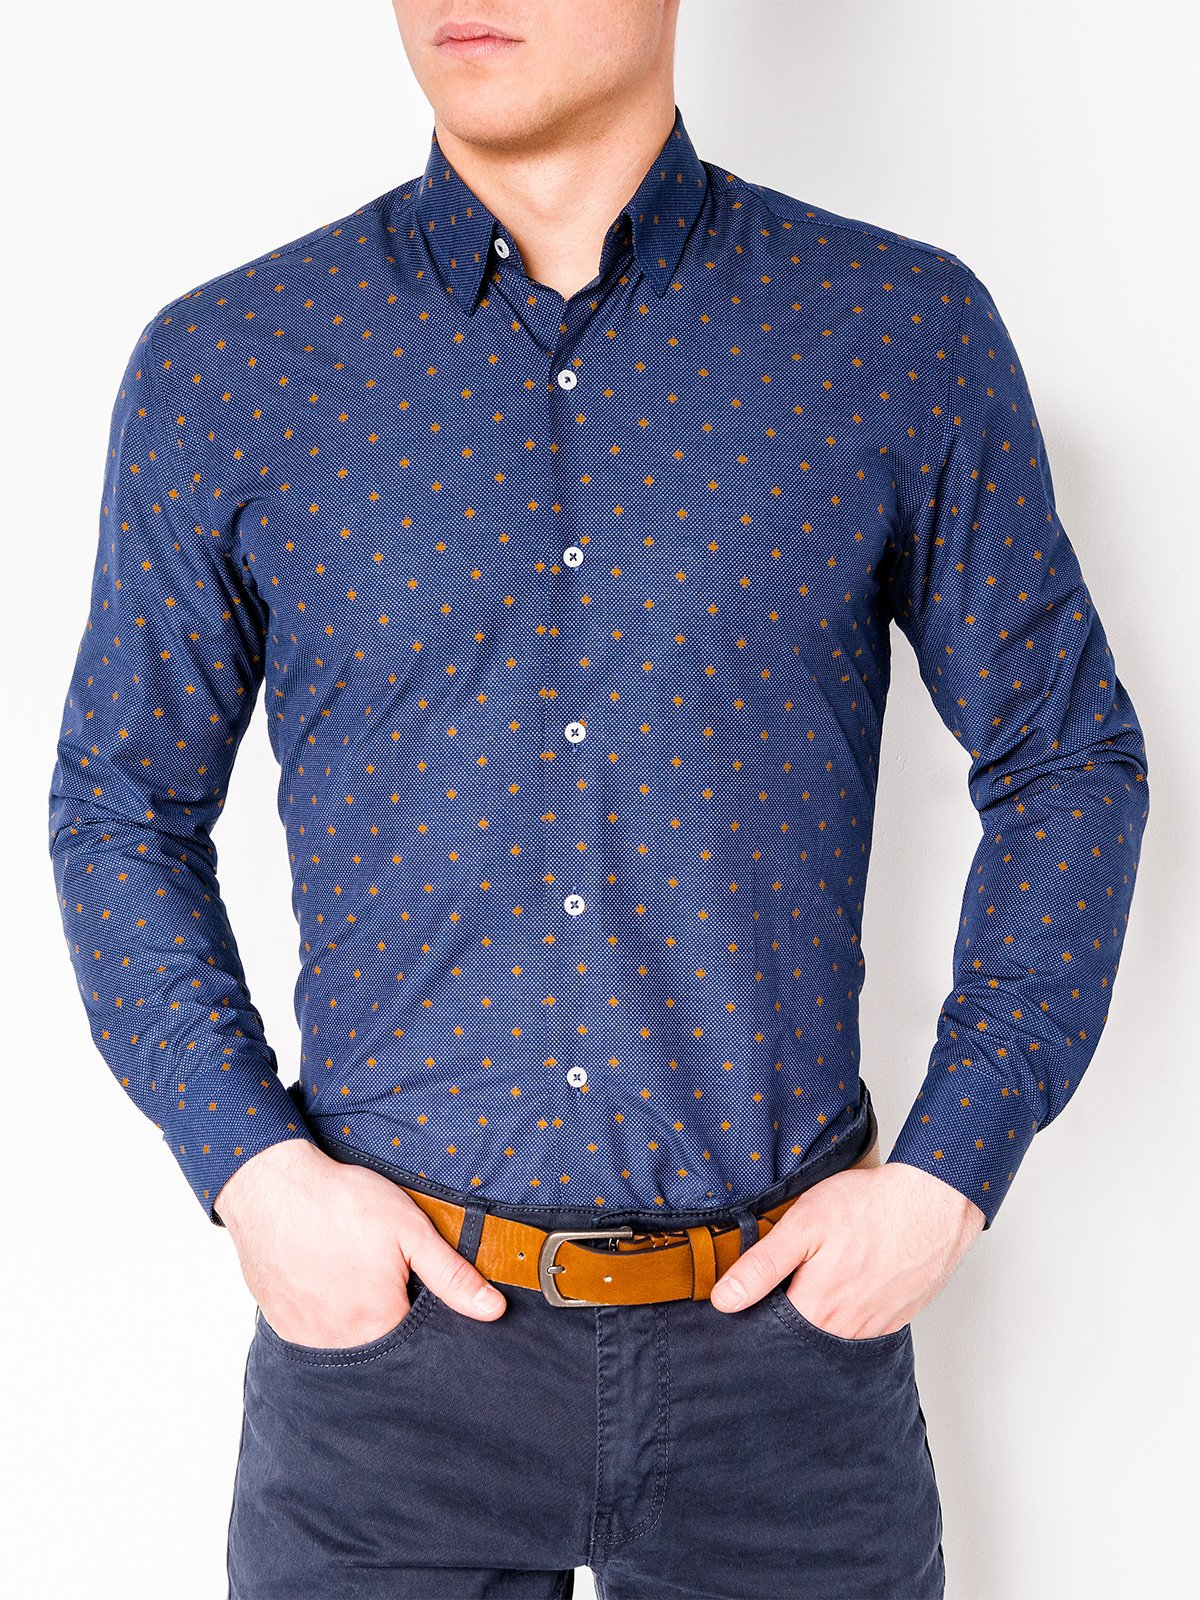 Ombre Clothing MEN'S ELEGANT SHIRT WITH LONG SLEEVES K463